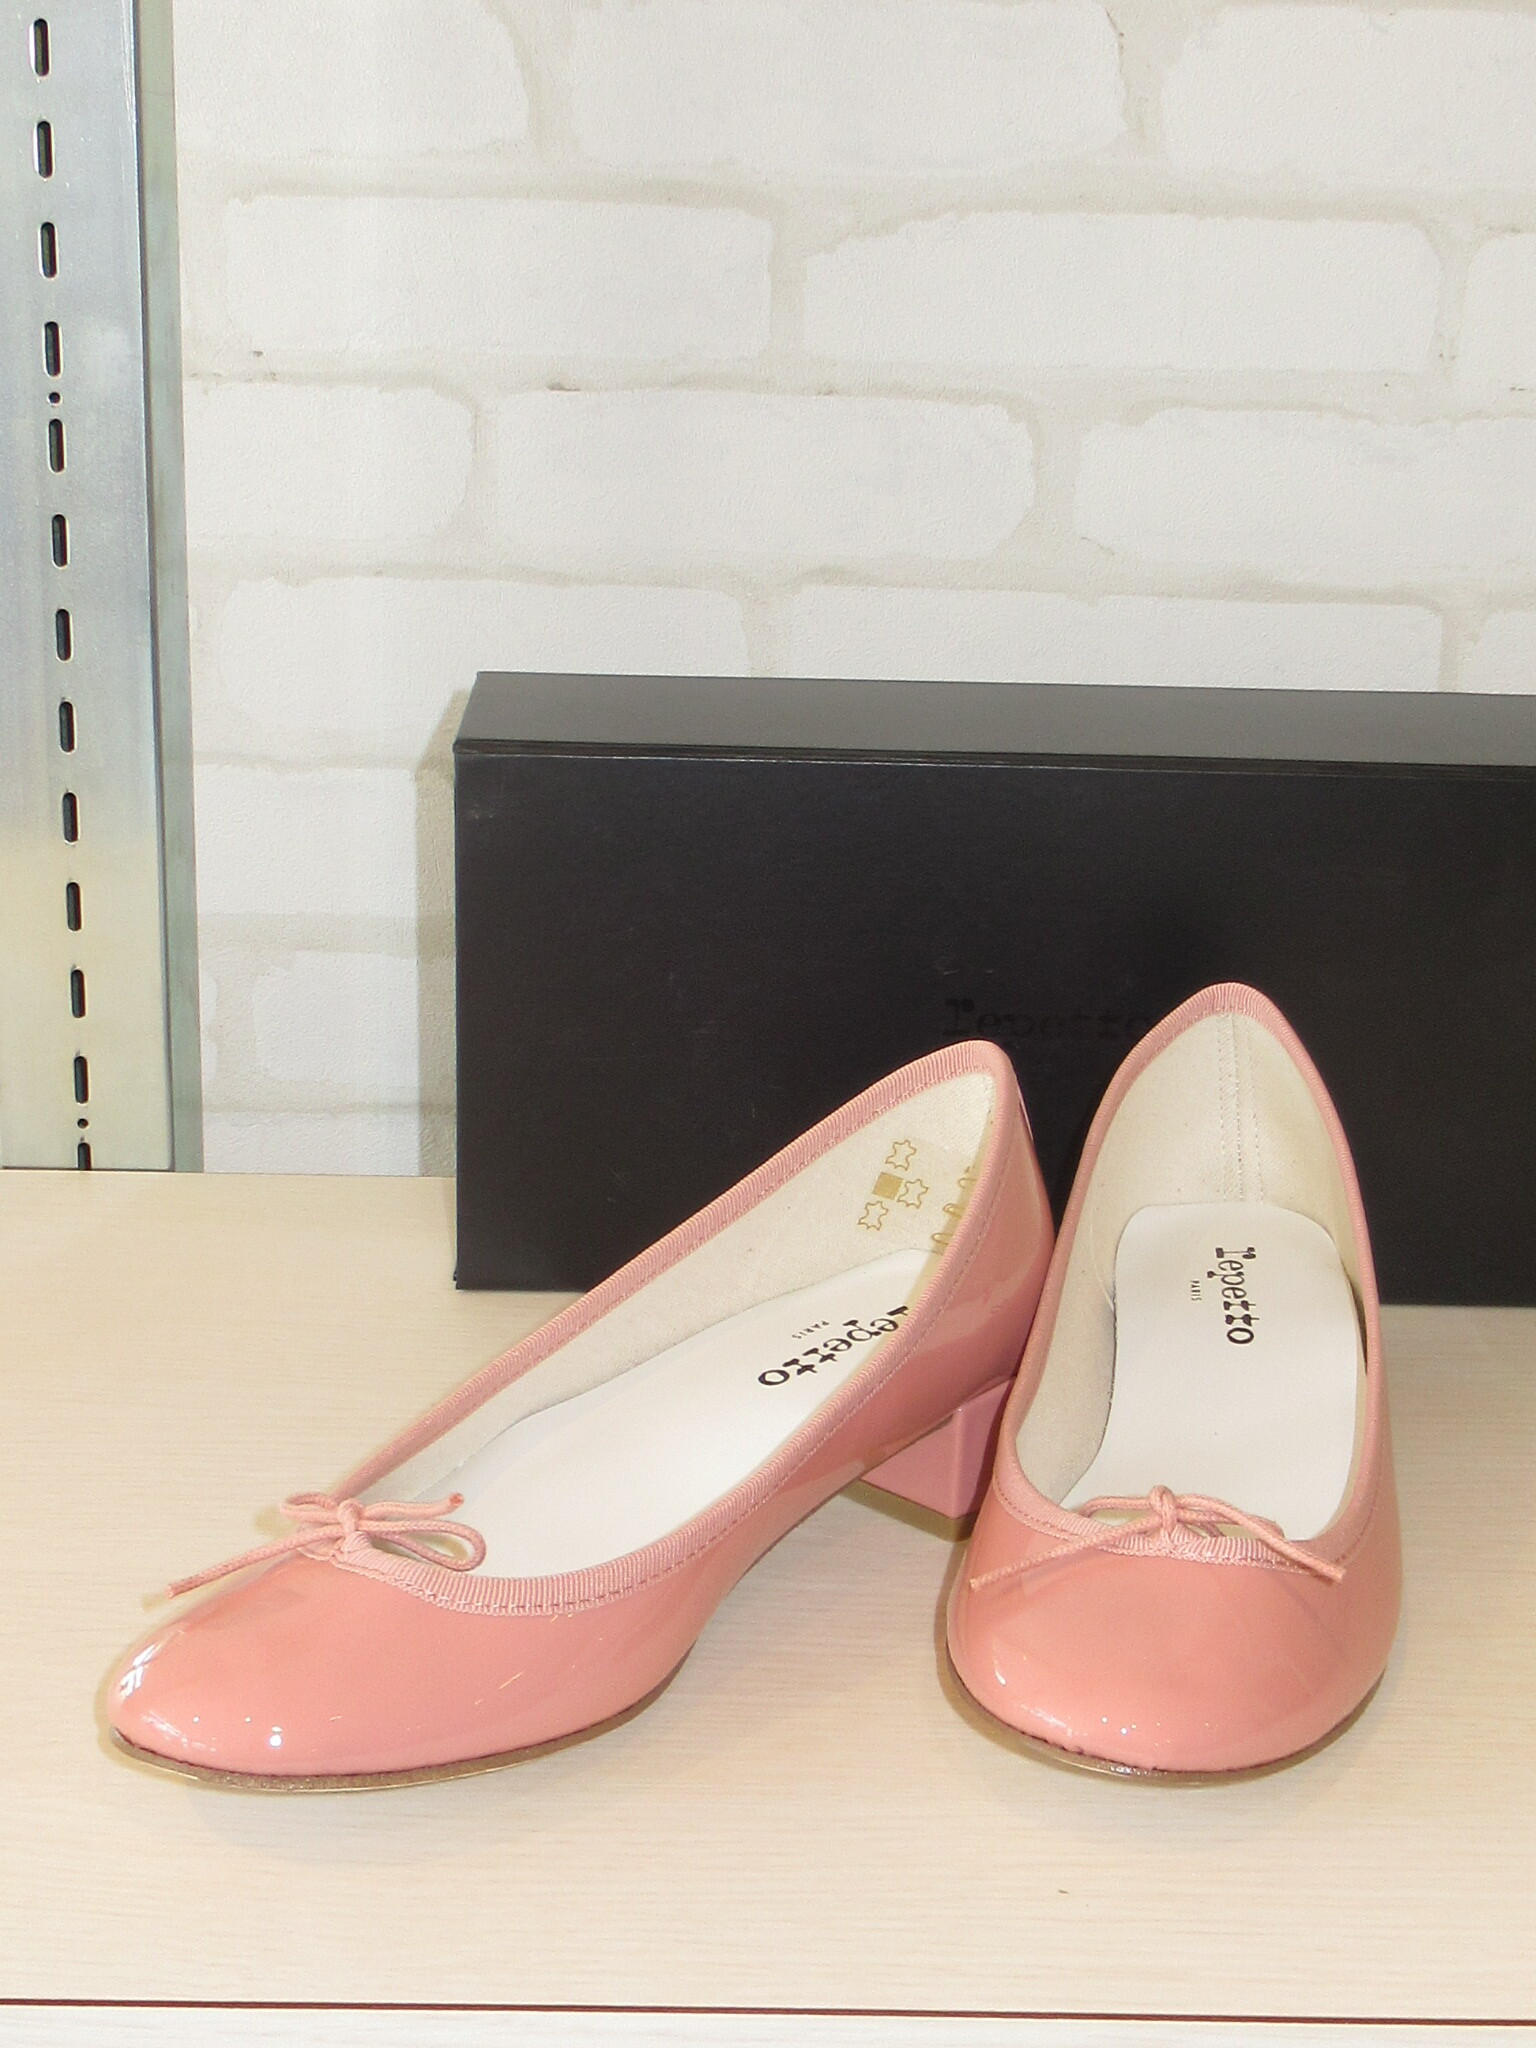 repetto/51511/Camille Ballerinas(ピンクパテント)